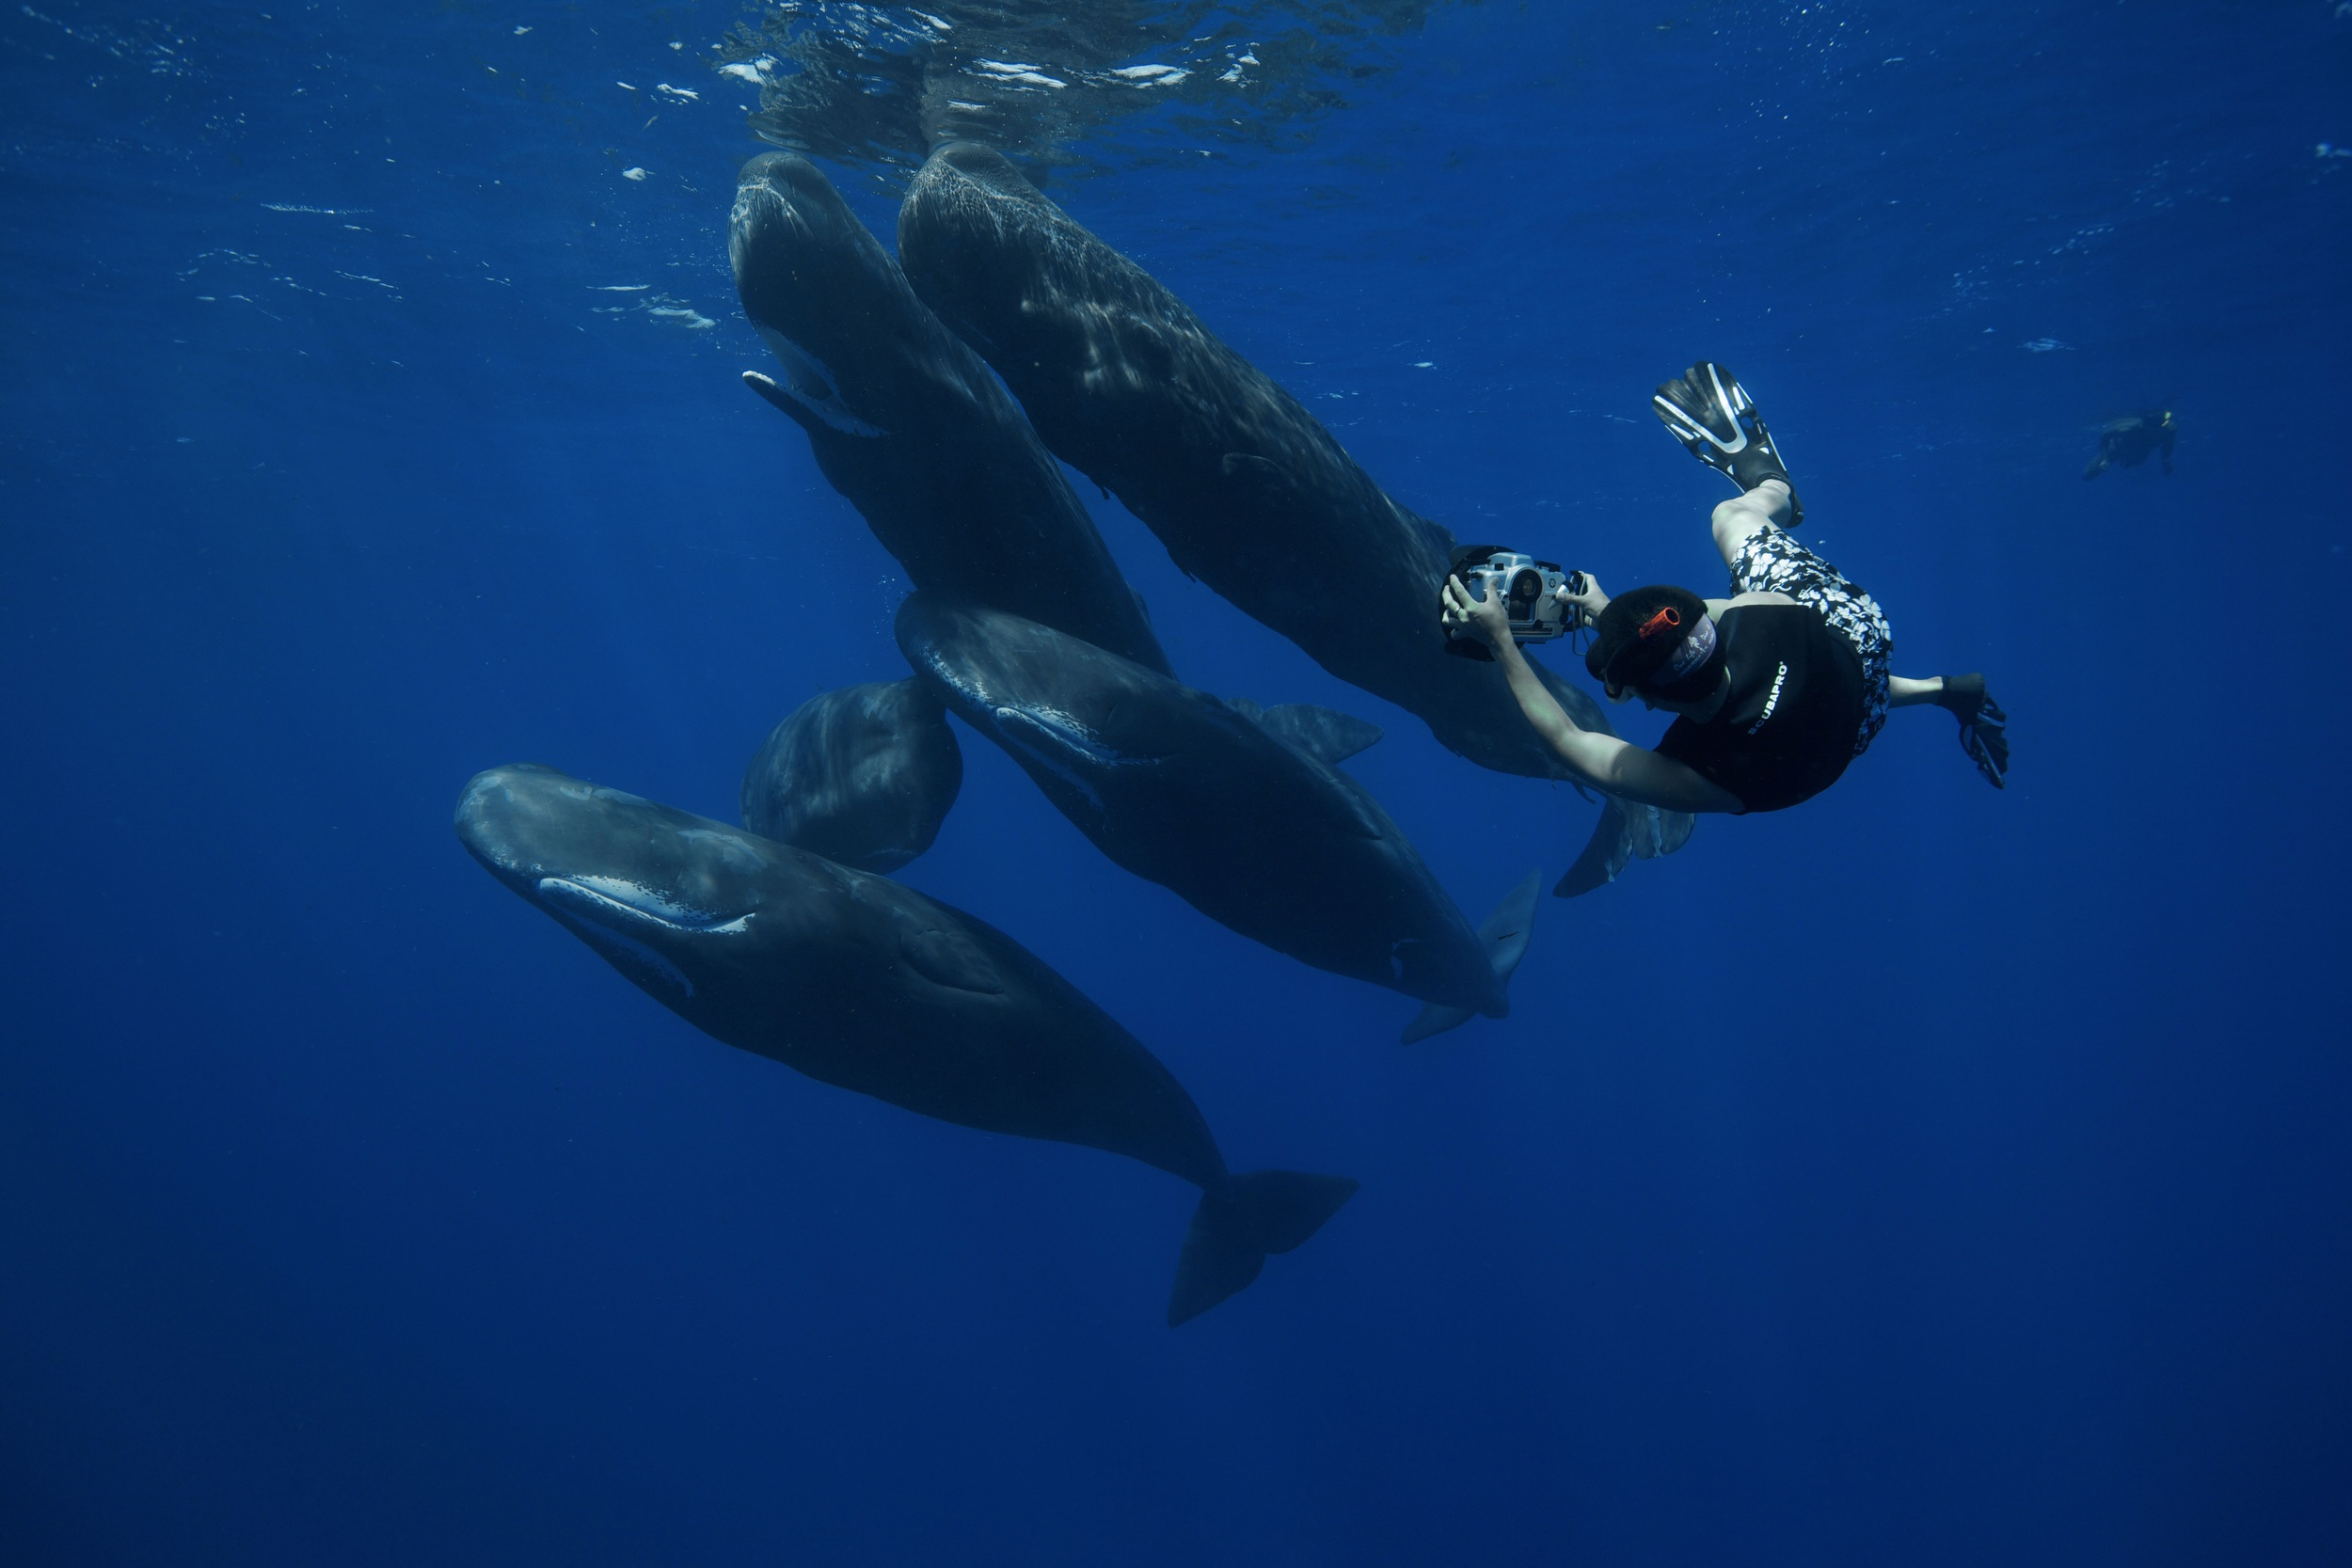 Eric Cheng photographing a group of five sperm whales